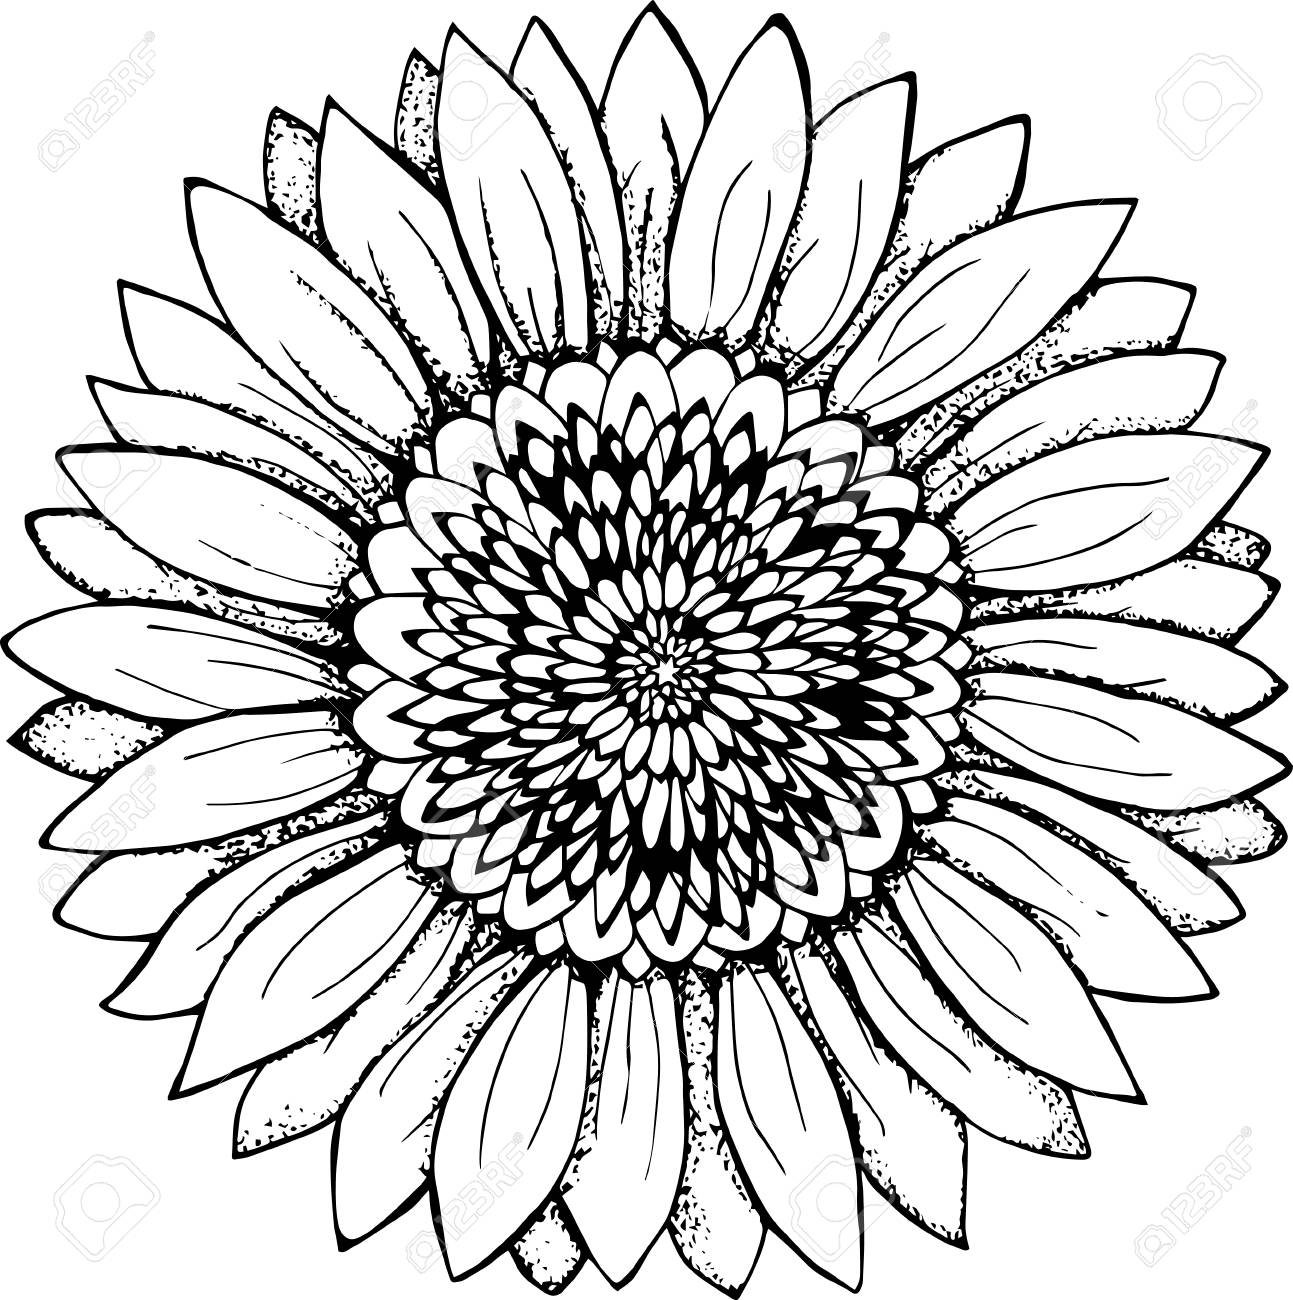 2419 Sunflower free clipart.